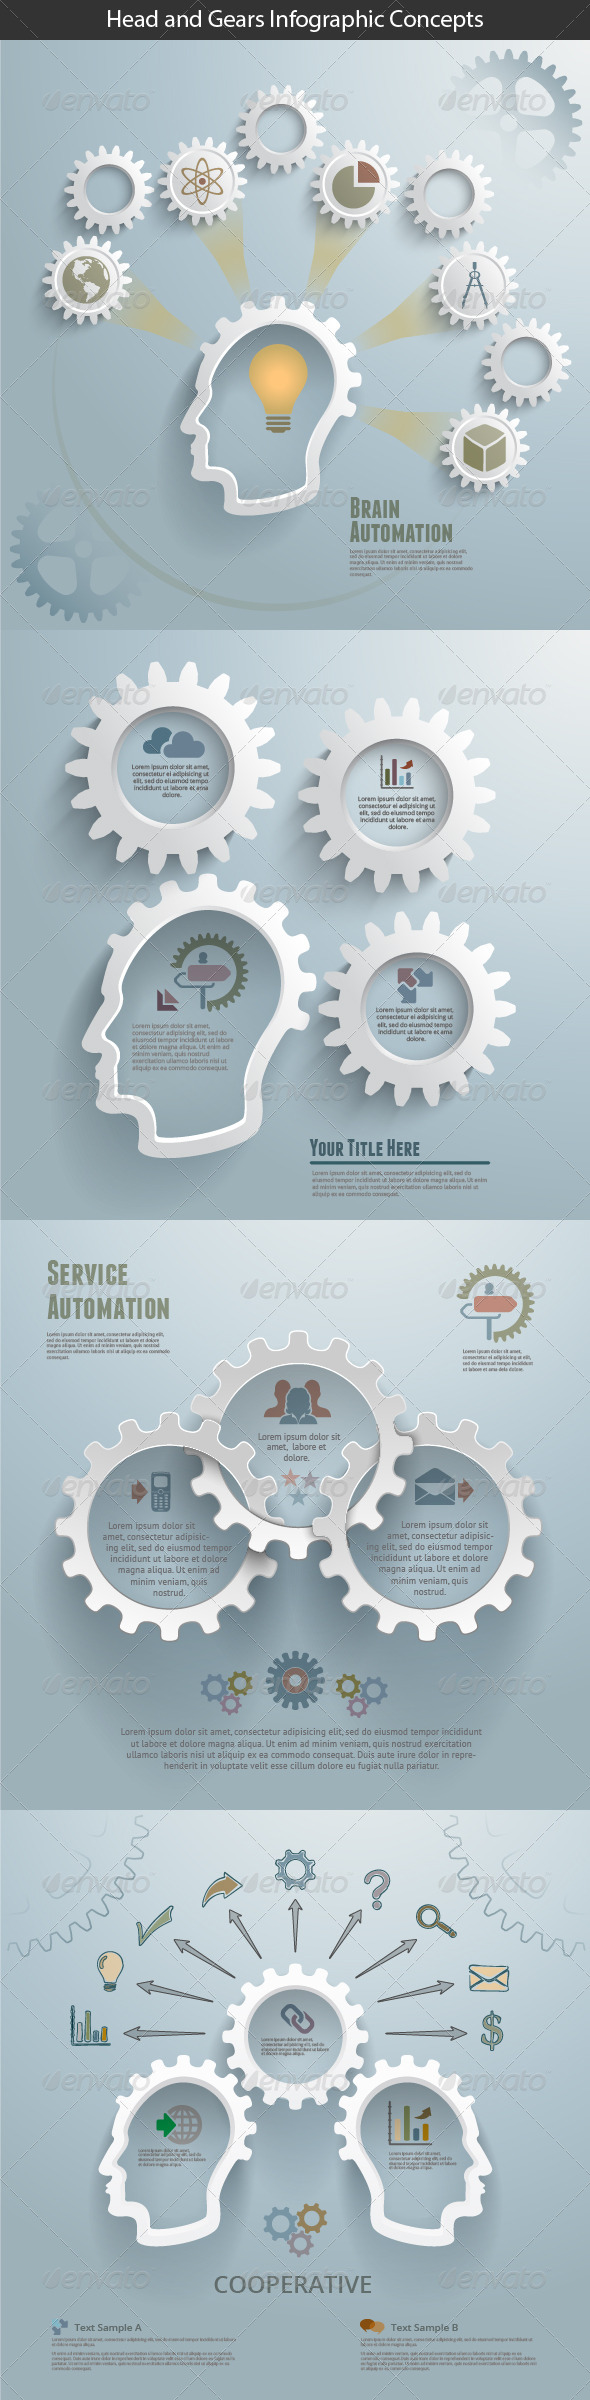 Head and Gears Infographic Concepts - Infographics